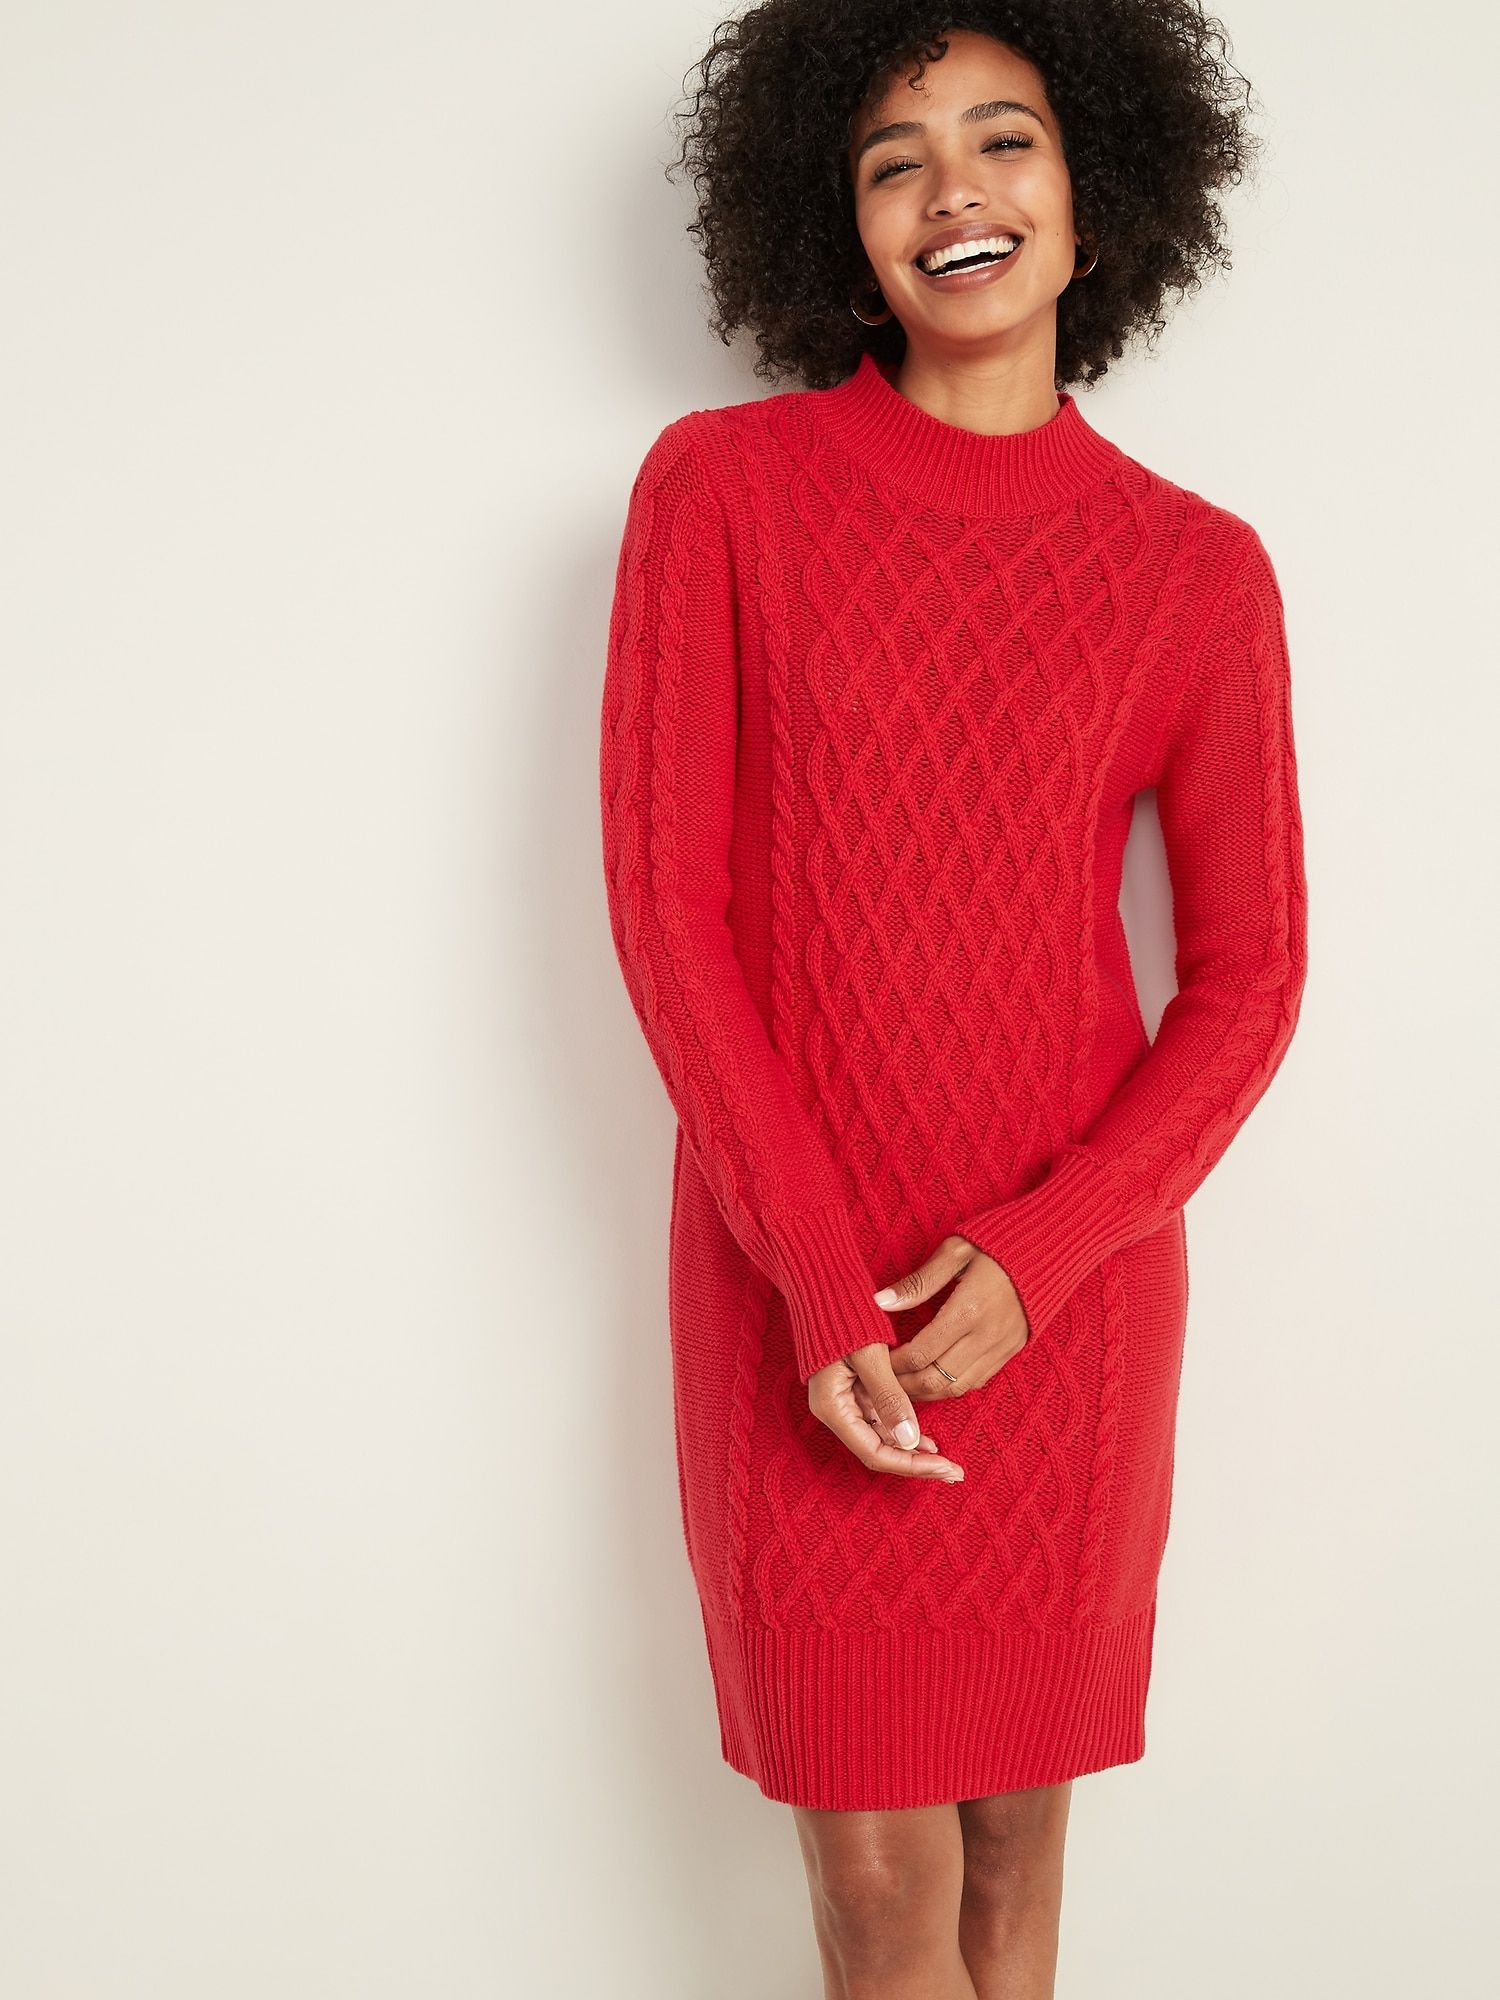 Cable Knit Sweater Dress For Women In 2021 Sweater Dress Women Cable Knit Sweater Dress Sweater Dress [ 2000 x 1500 Pixel ]